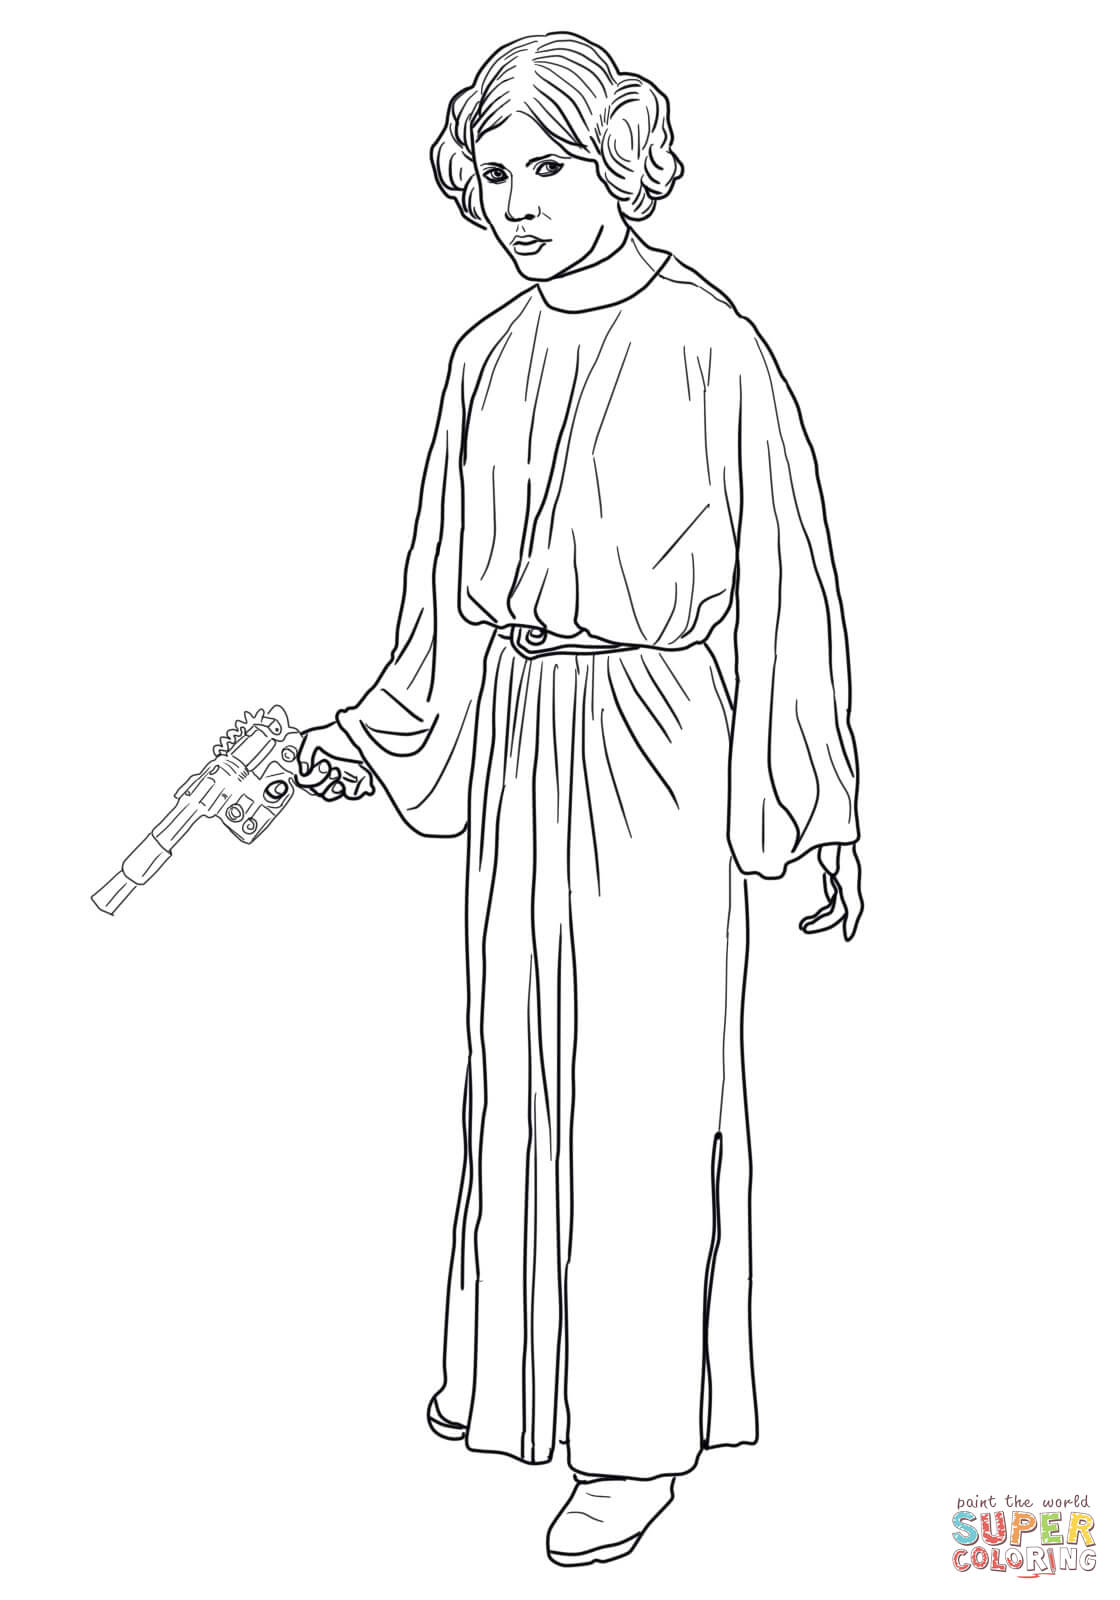 princess leia coloring pages prinzessin leia 4 abc coloring pages abc coloring pages leia princess coloring